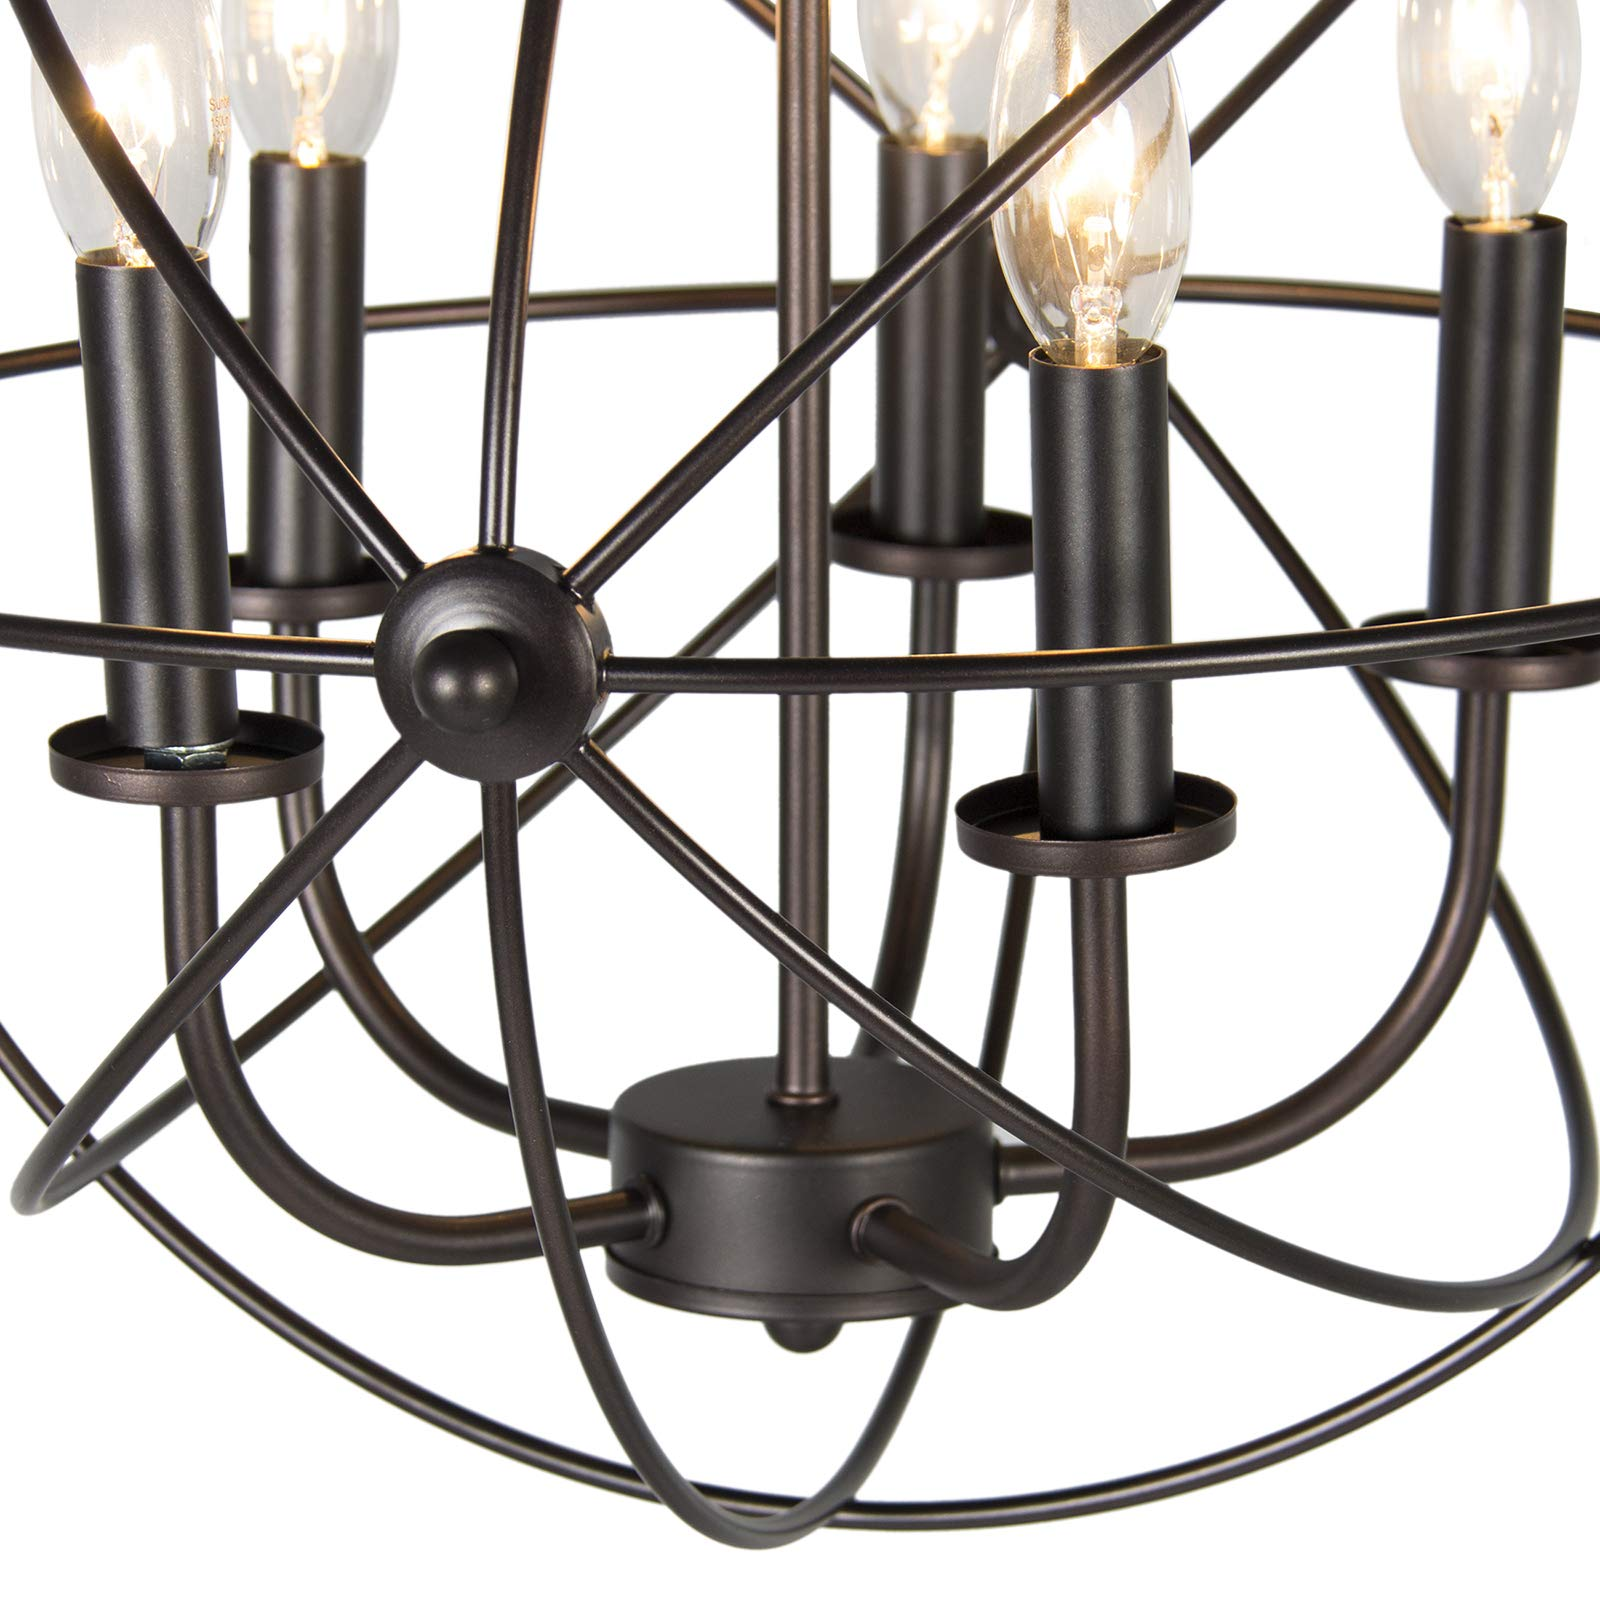 Industrial Vintage Lighting Ceiling Chandelier 5 Lights Metal Hanging Fixture by Best Choice Products (Image #4)